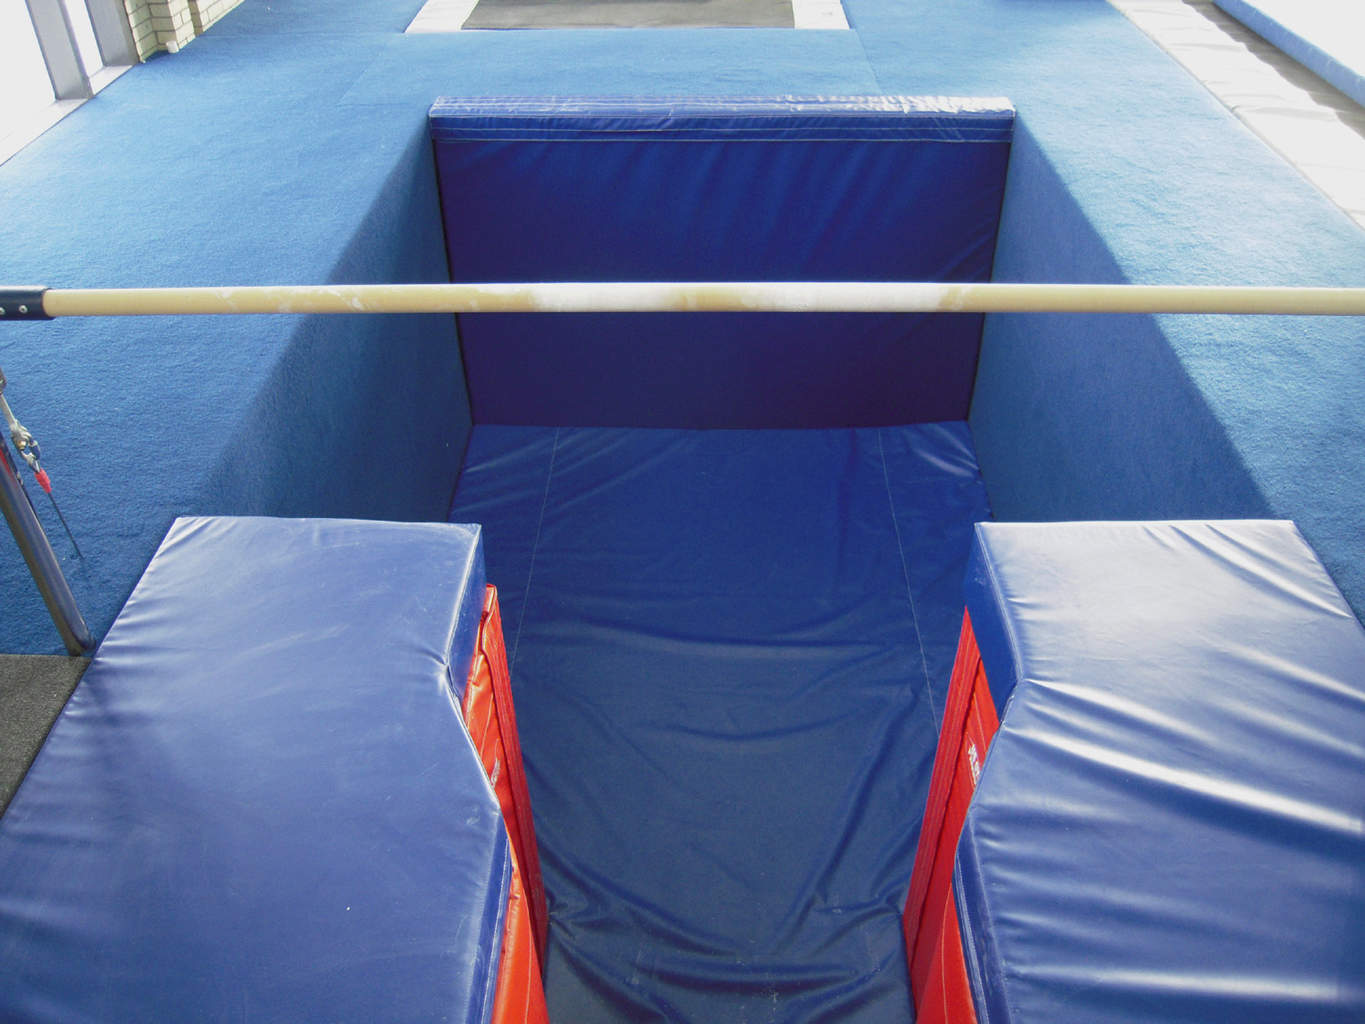 Gymnastics Gym University of Pennsylvania Foam Pit